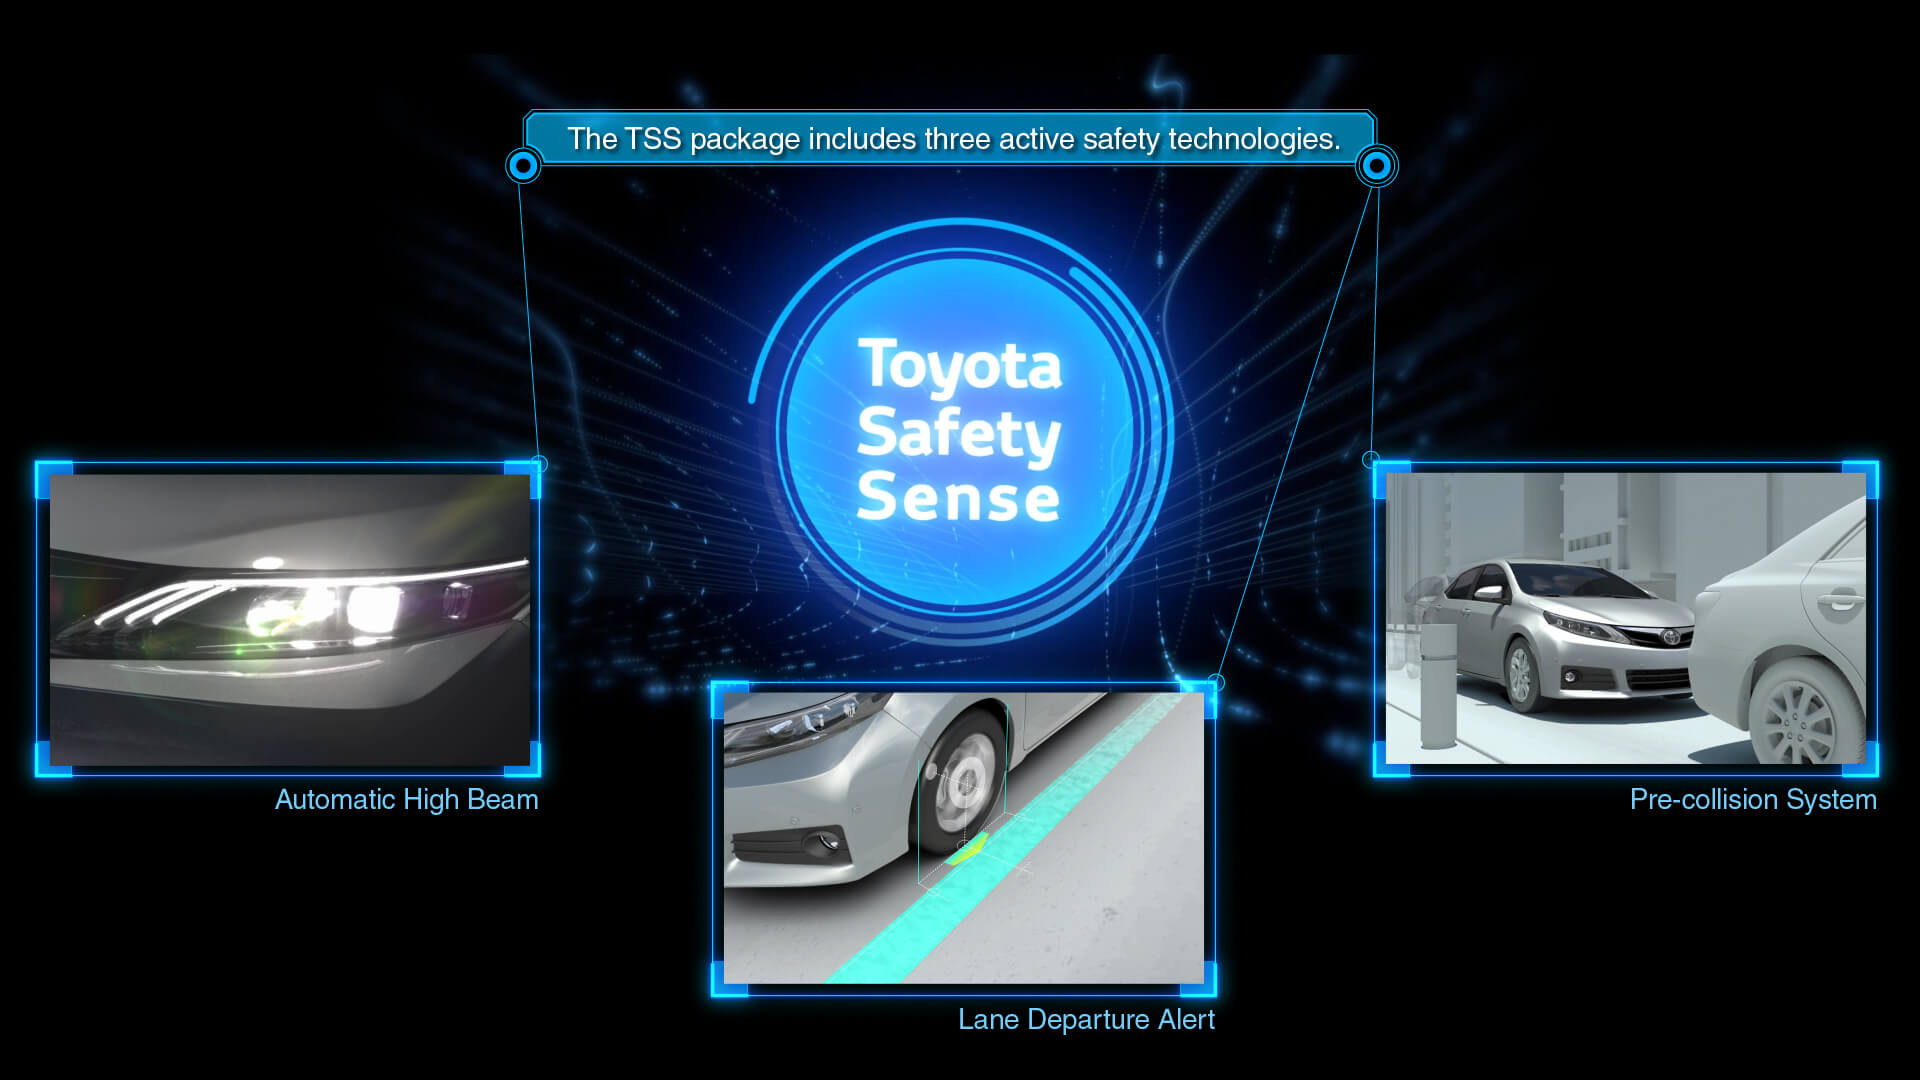 Things you didn't know about Toyota; Toyota safety sense